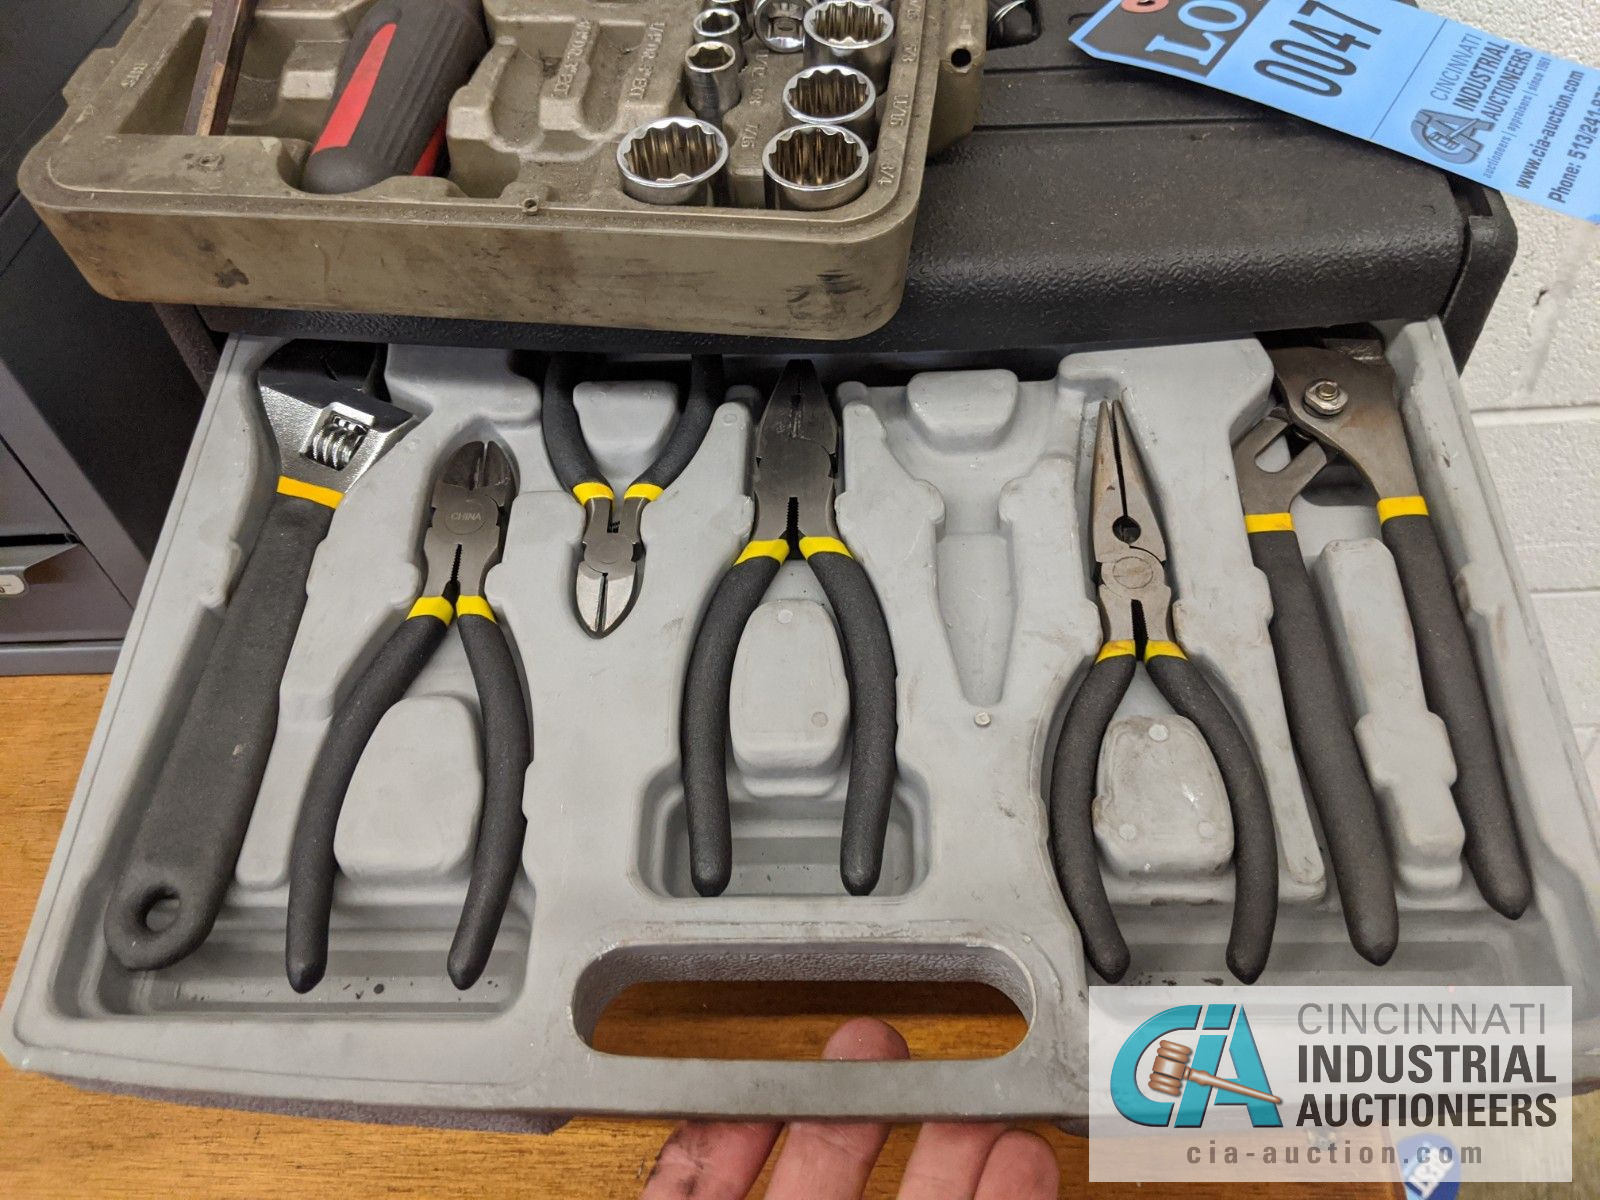 (LOT) TOOL SETS WITH WRENCHES, SOCKETS, OTHER - Image 2 of 5